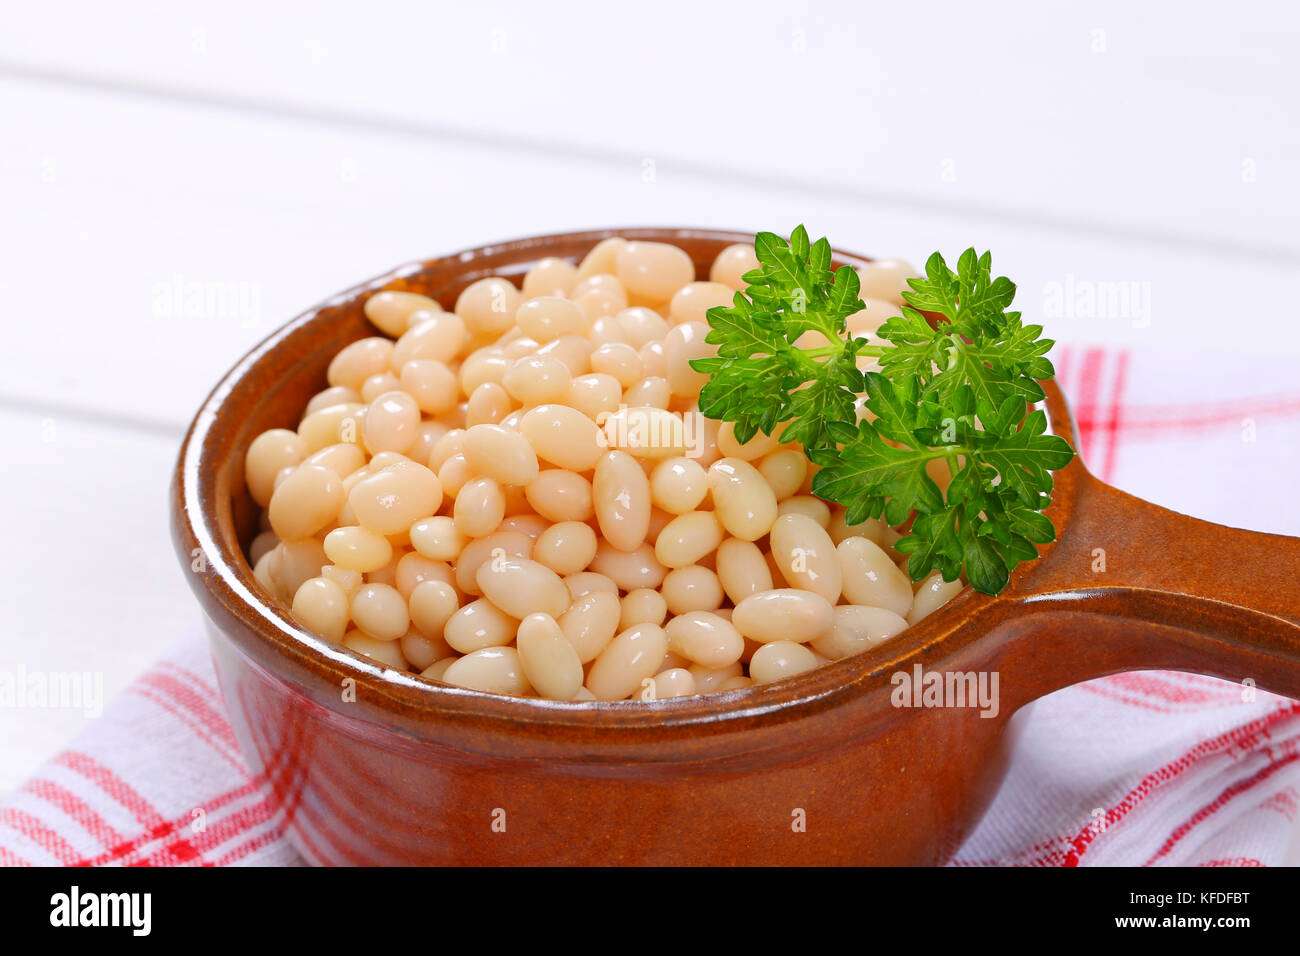 saucepan of canned white beans on checkered dishtowel - close up - Stock Image